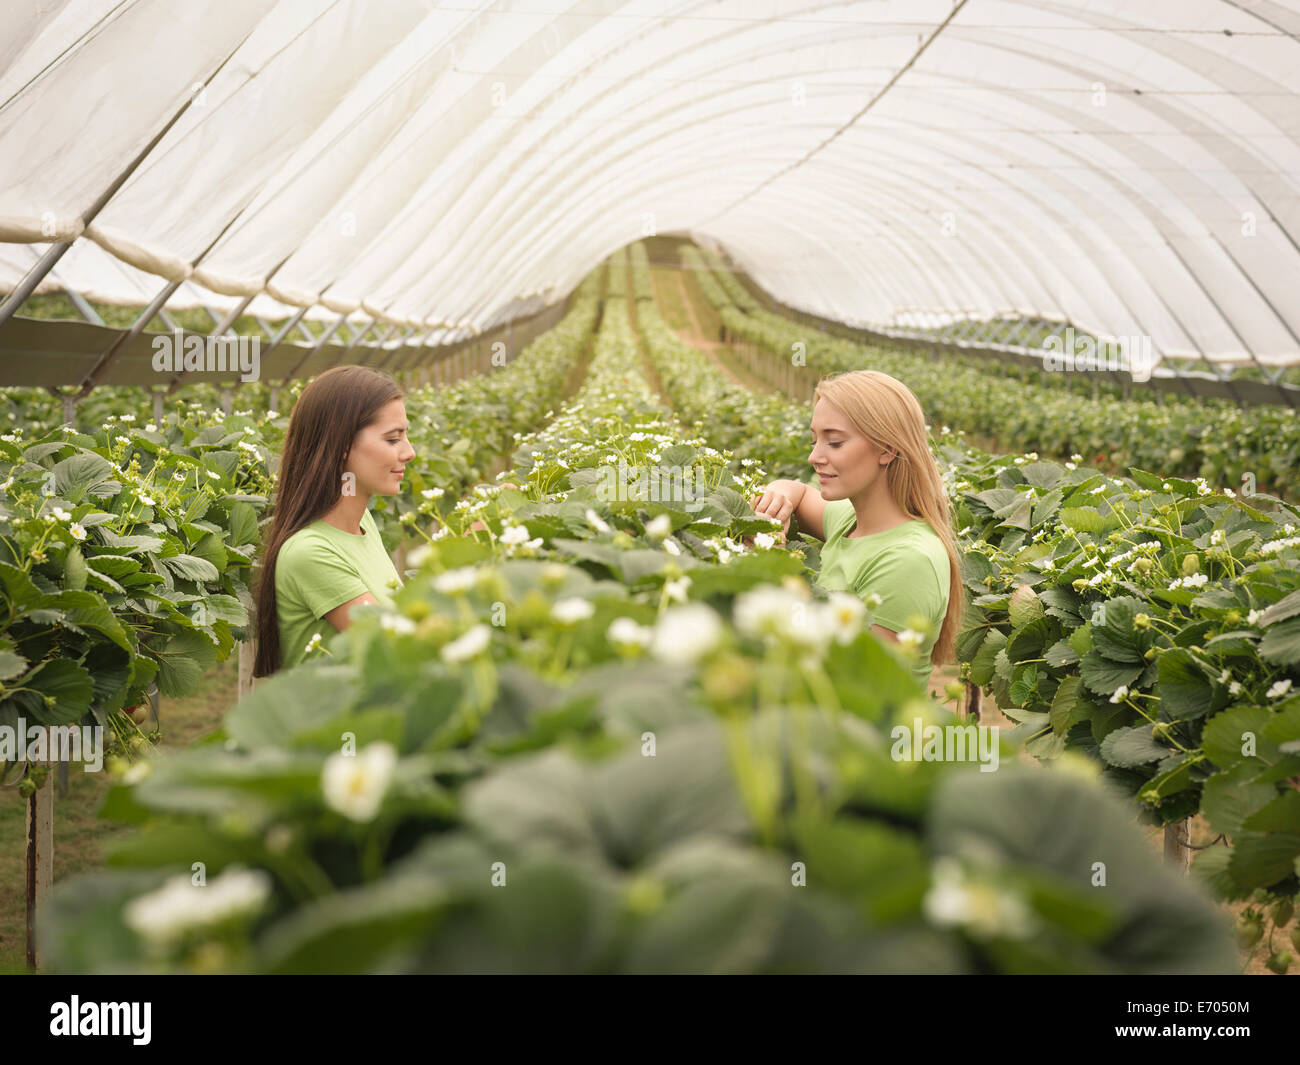 Workers checking strawberry plants in polytunnel on fruit farm - Stock Image